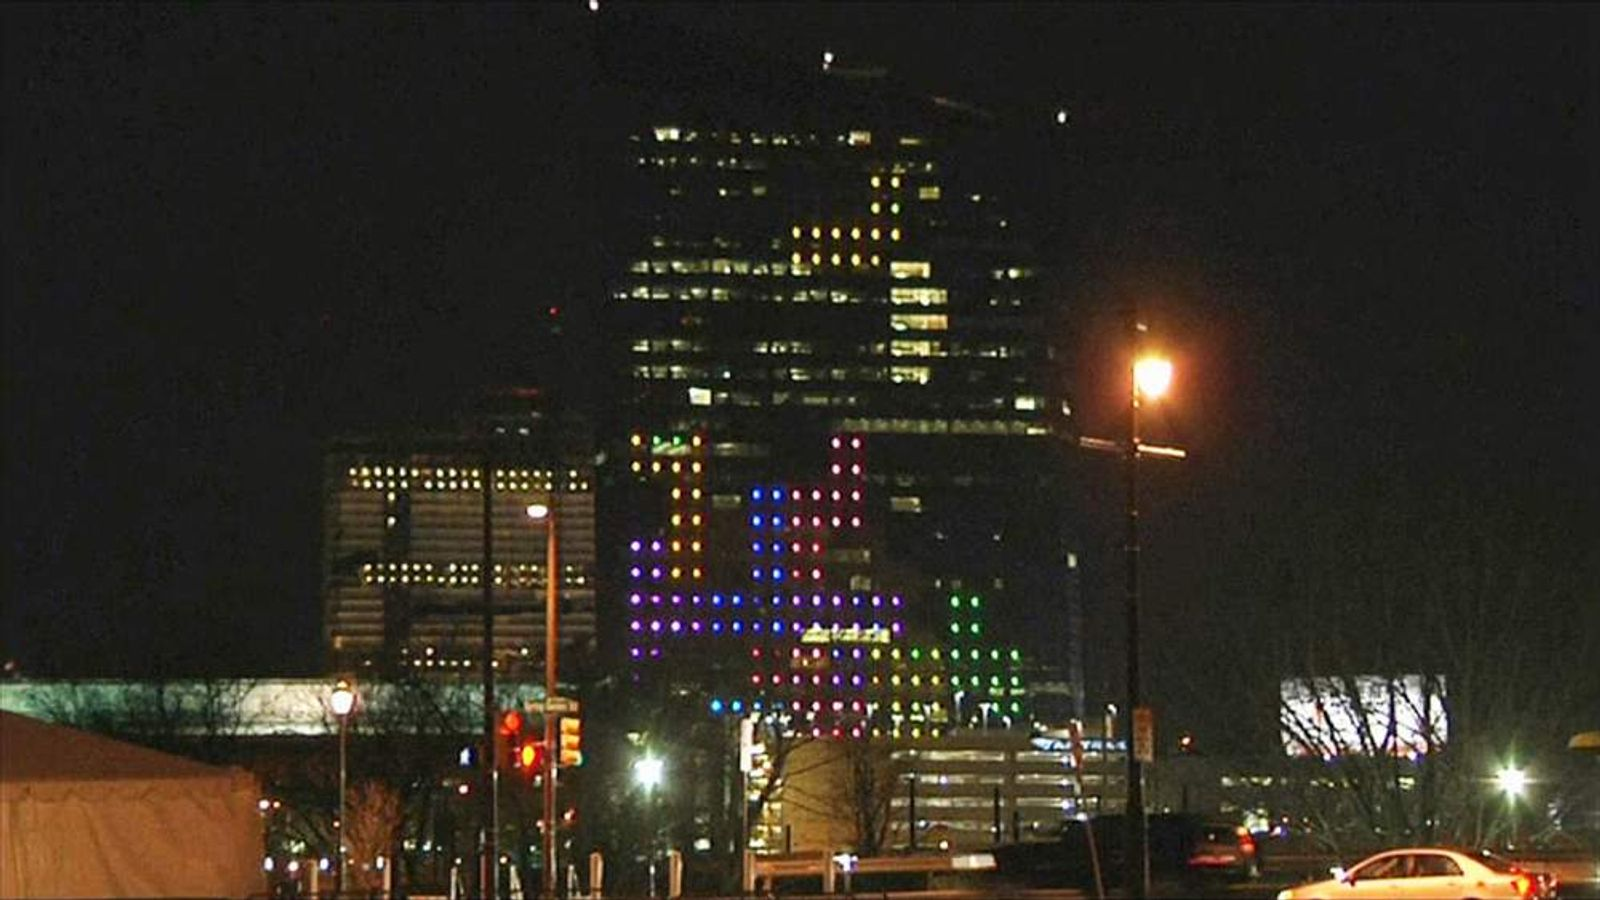 Tetris played on front of Philadelphia building